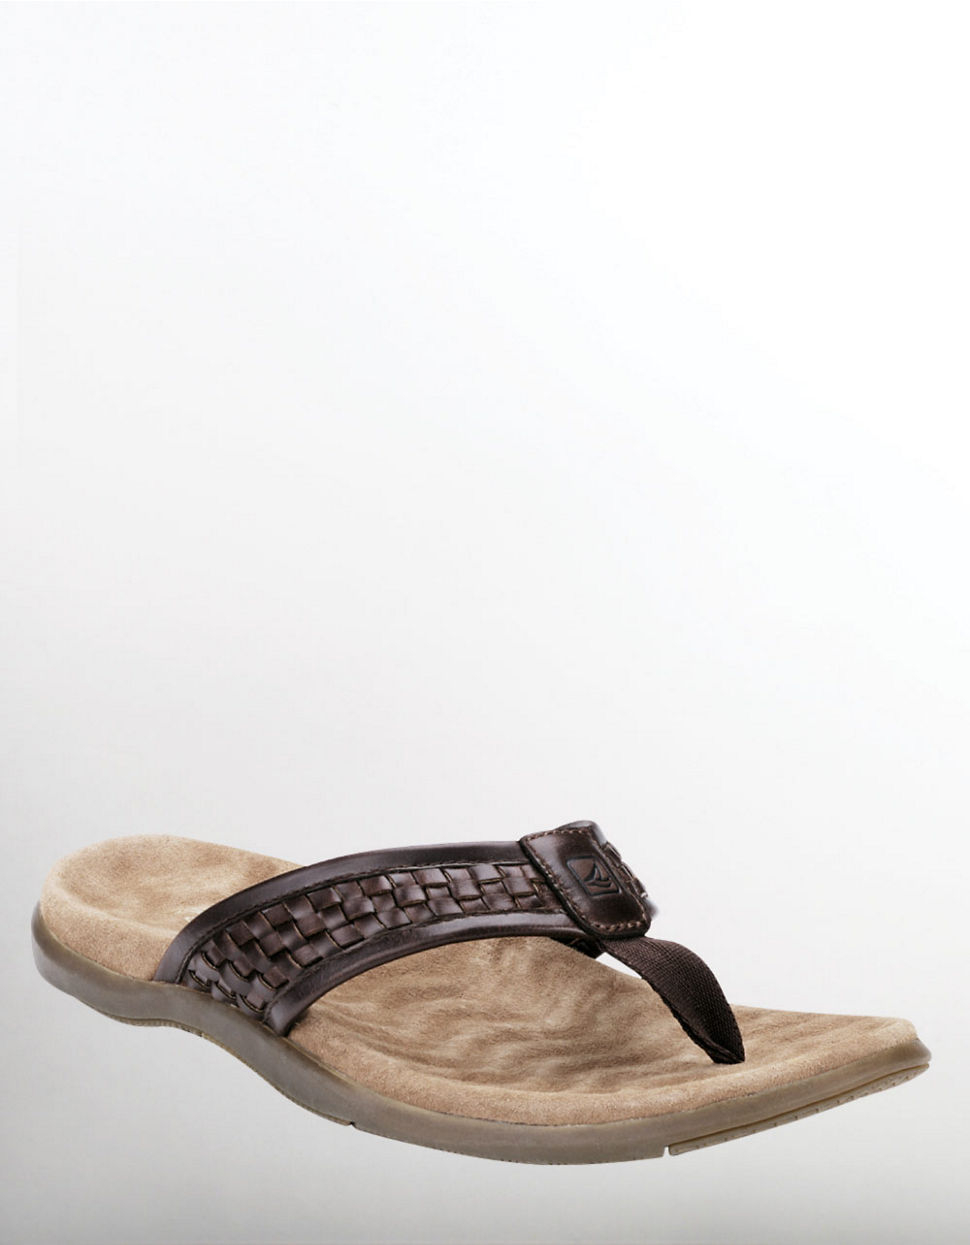 a4bc6fbf6192 Lyst - Sperry Top-Sider Largo Woven Leather Thong Sandals in Brown ...